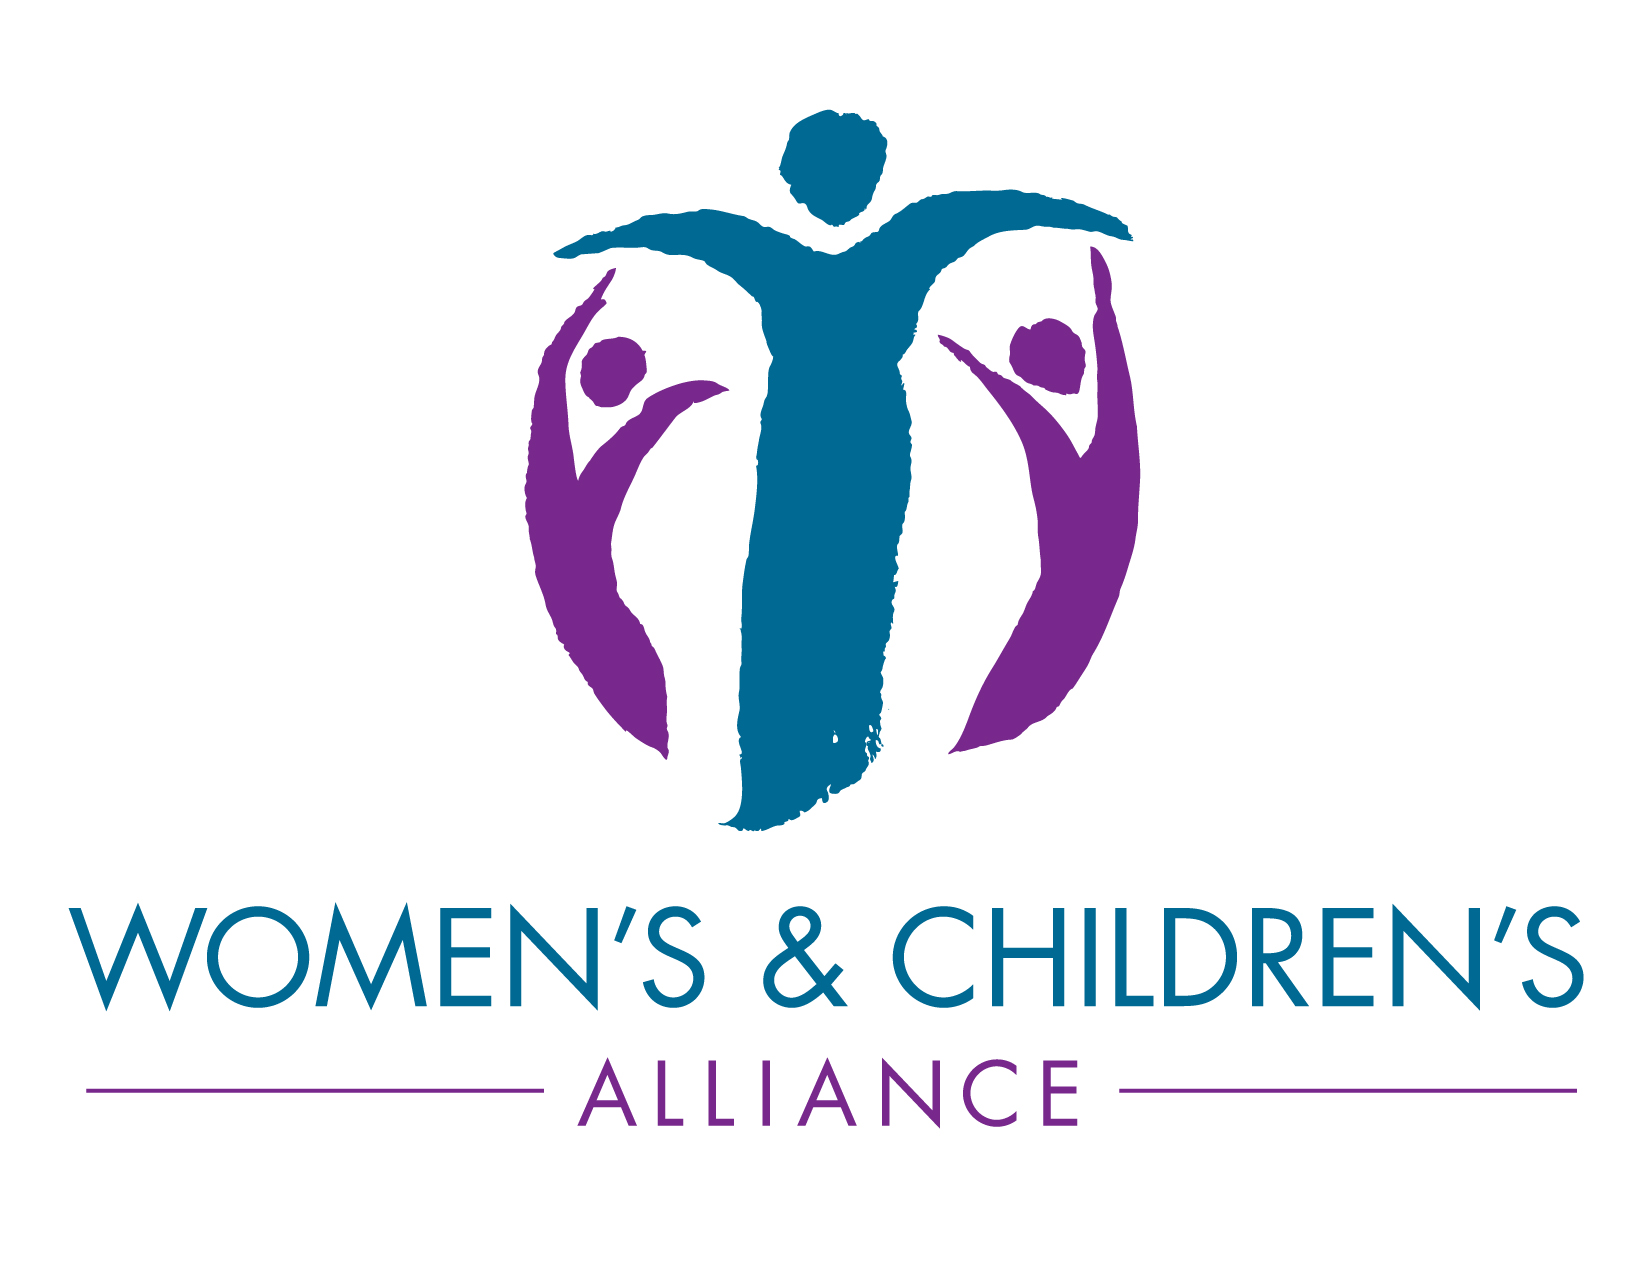 WCA/Women's and Children's Alliance